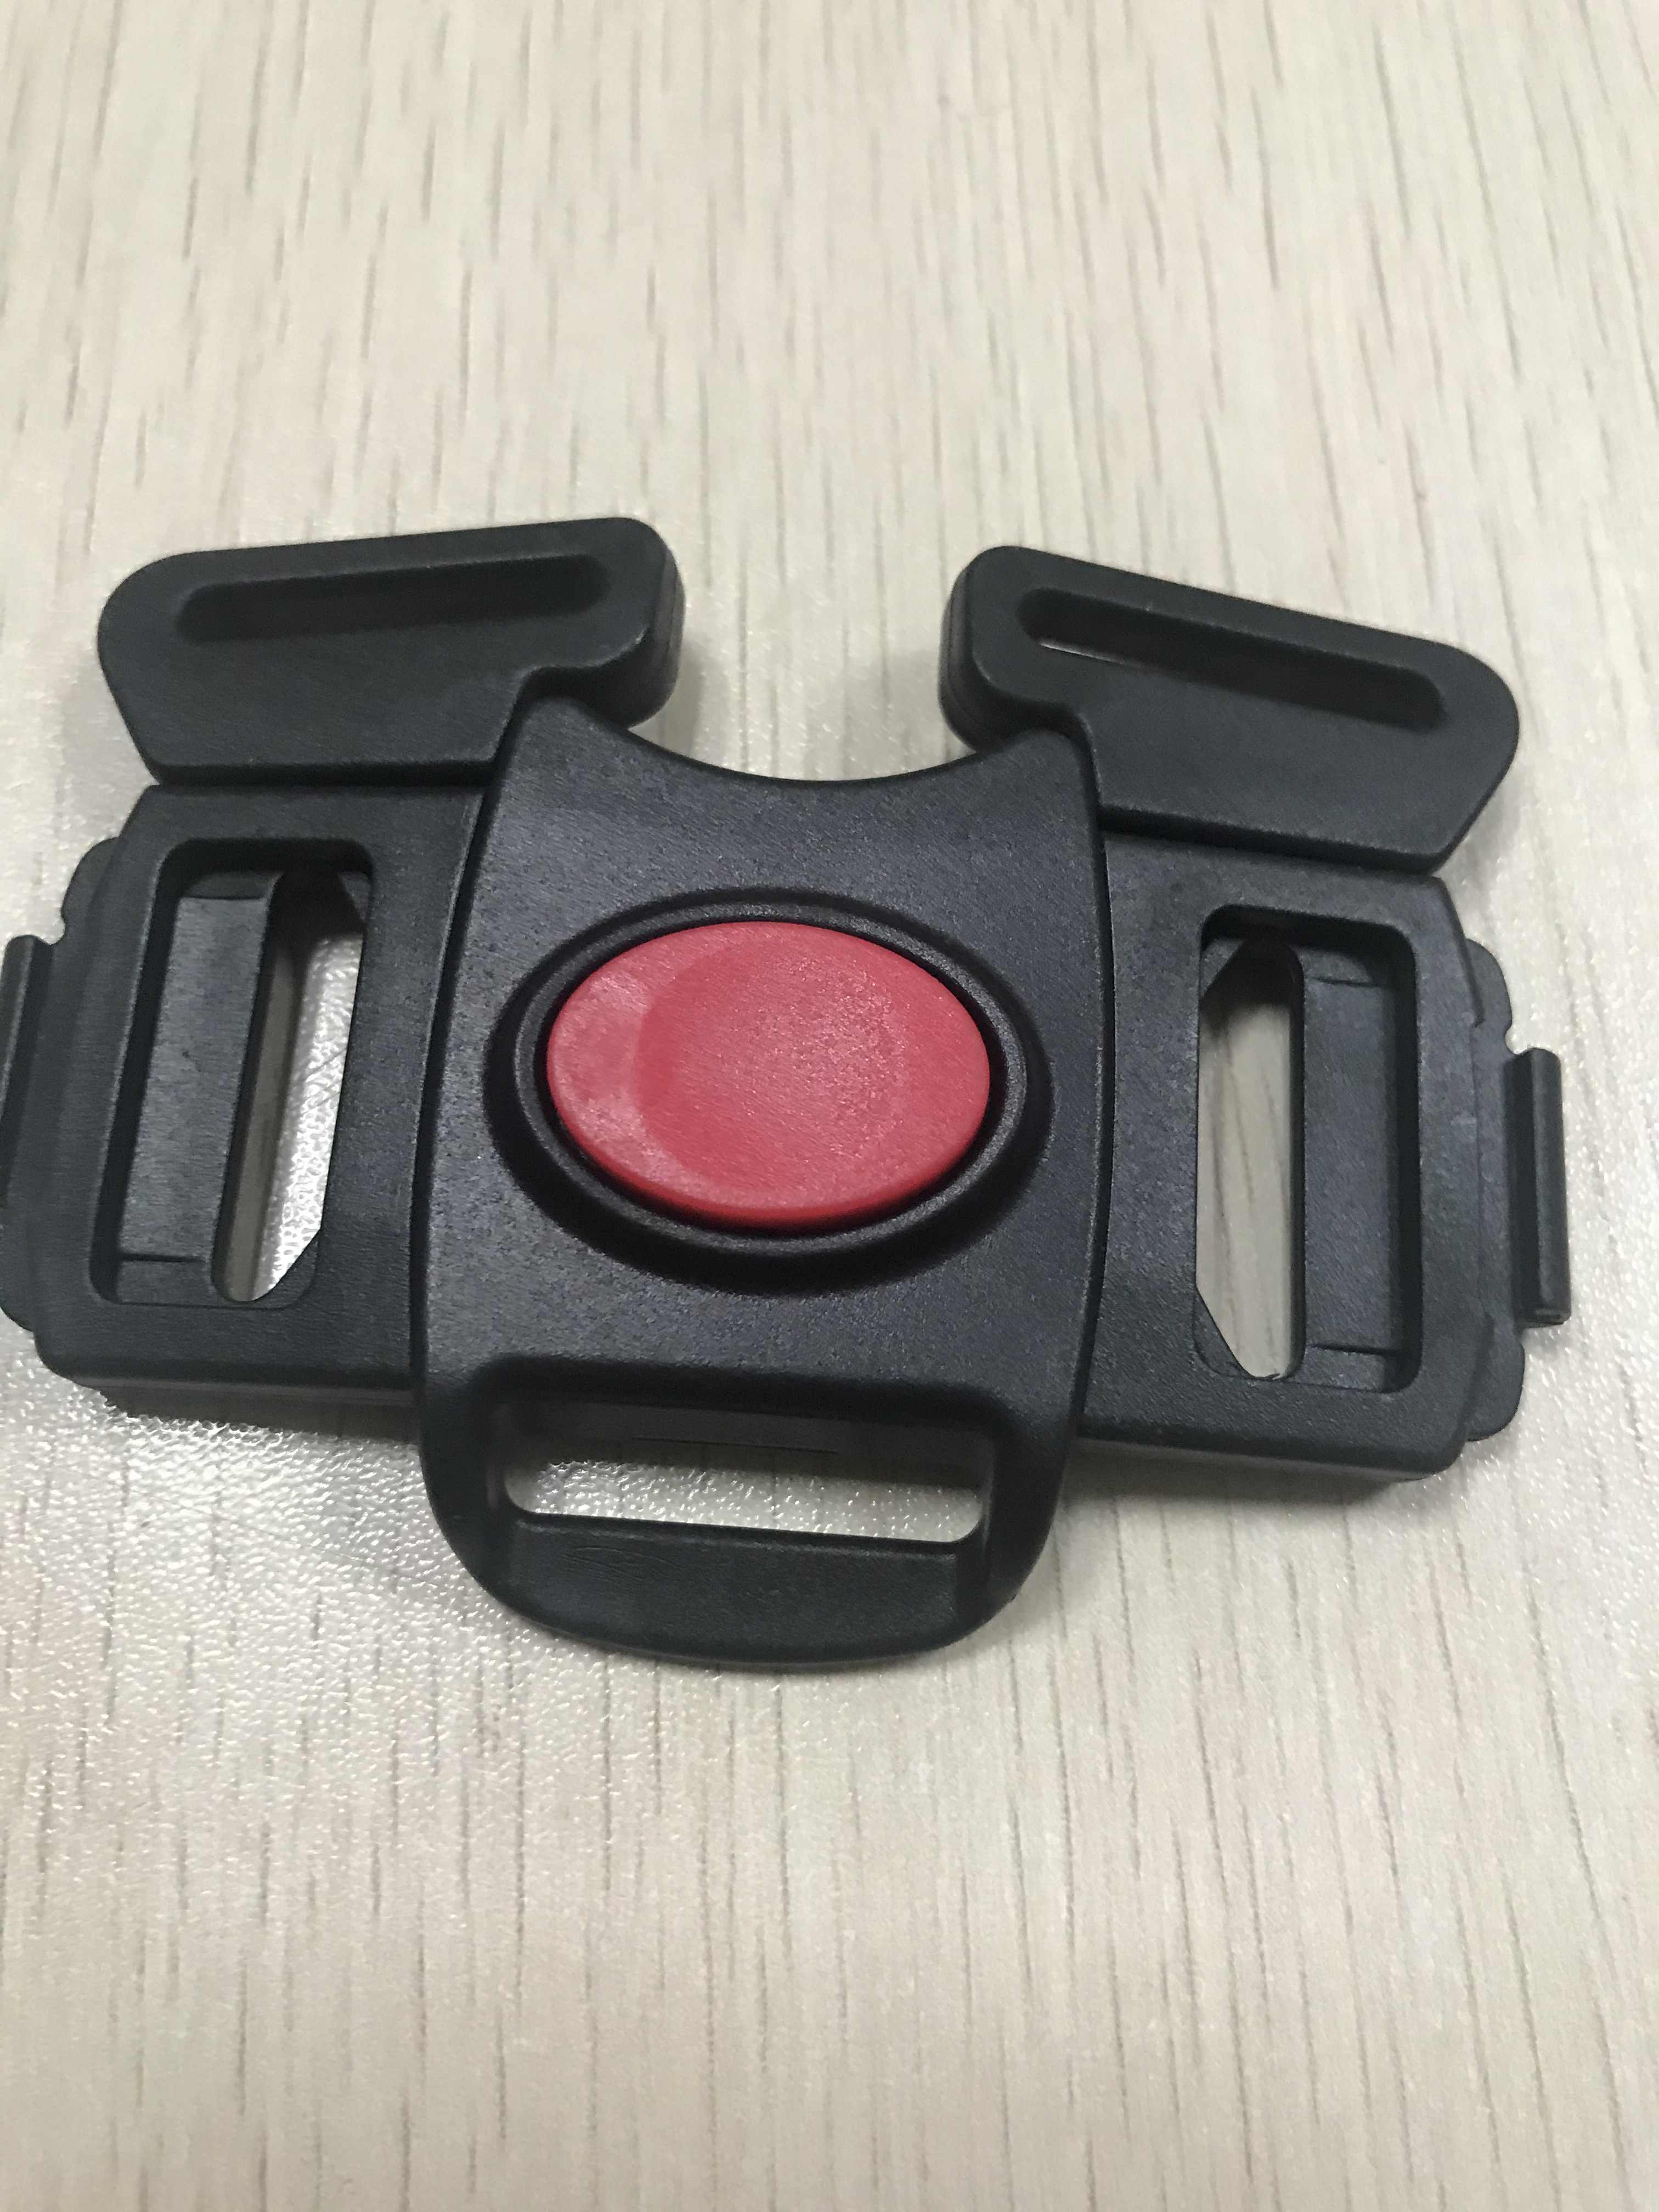 Toddlers Children Black 5 Point Harness Buckle Clip Replacement Part Seat Safety for Chicco Bravo Stroller Models for Babies Kids